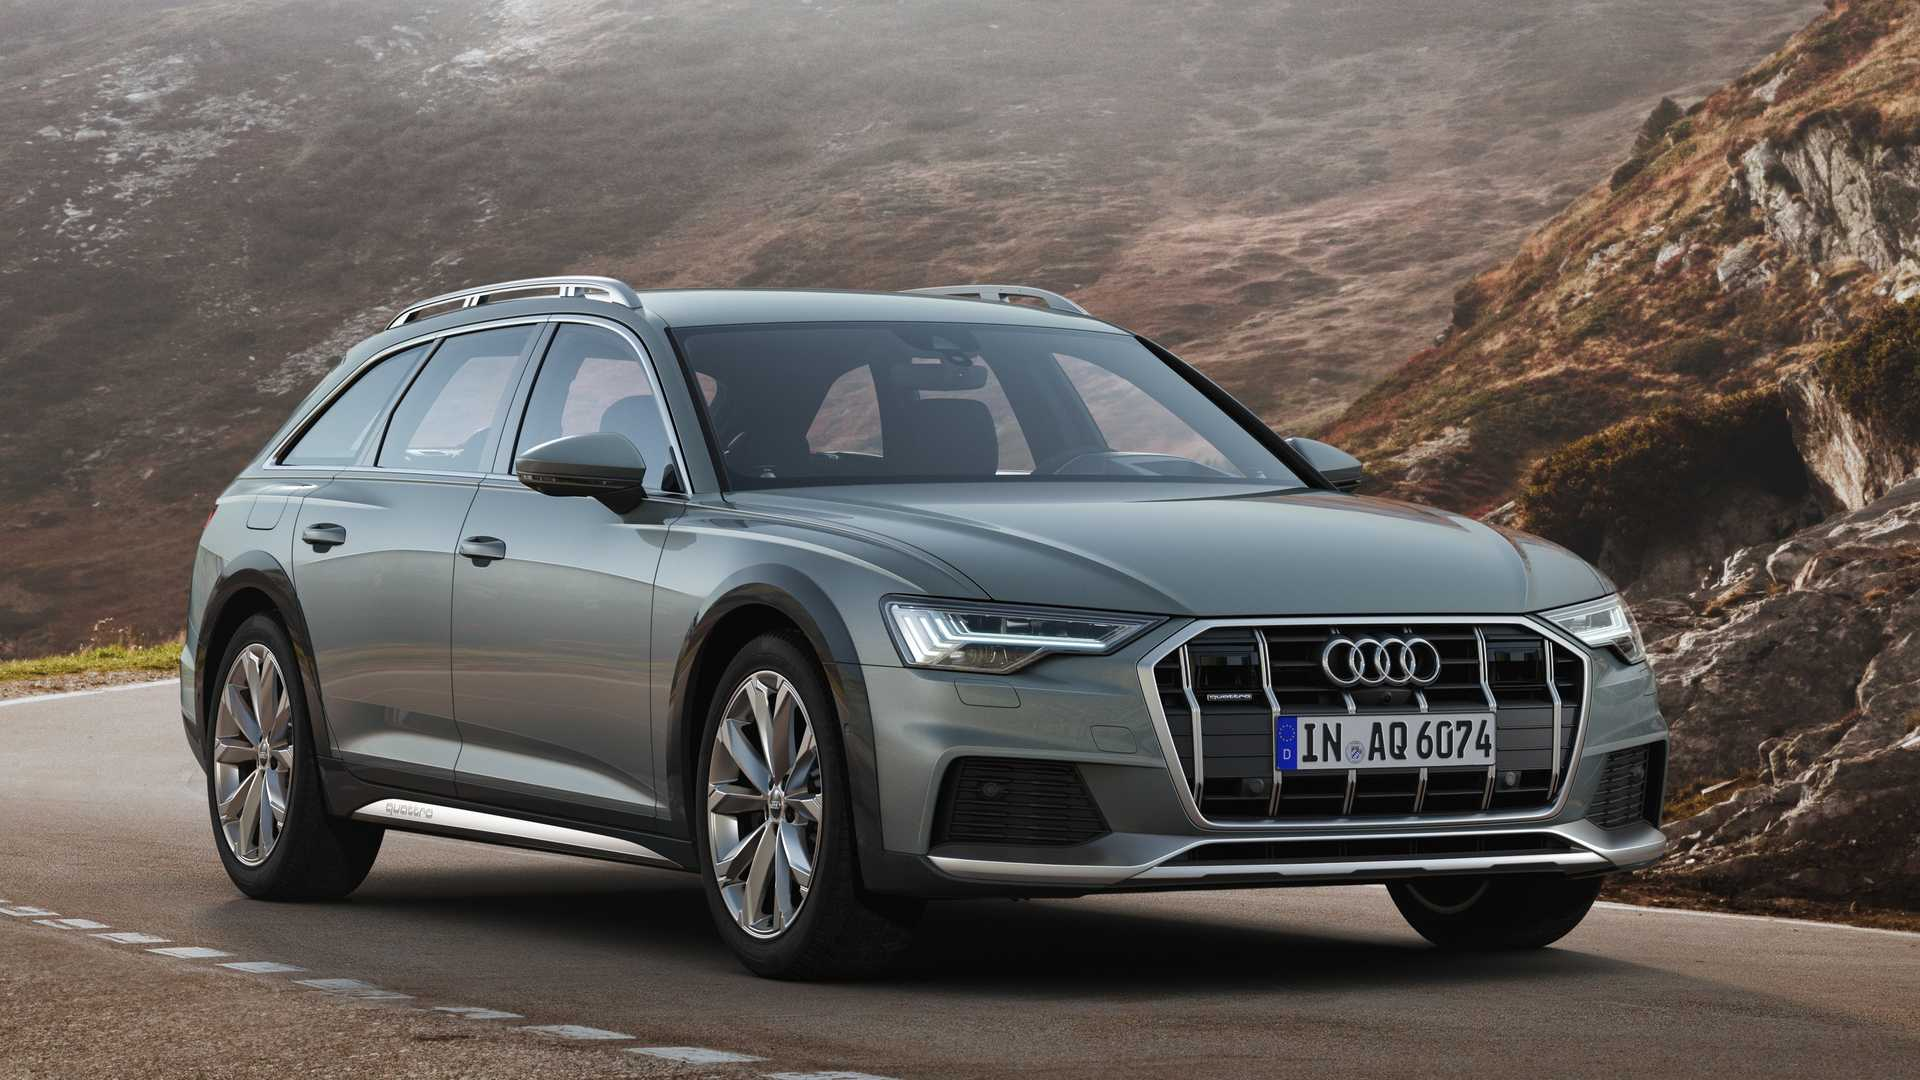 59 All New 2020 Audi A6 Allroad Usa Spesification